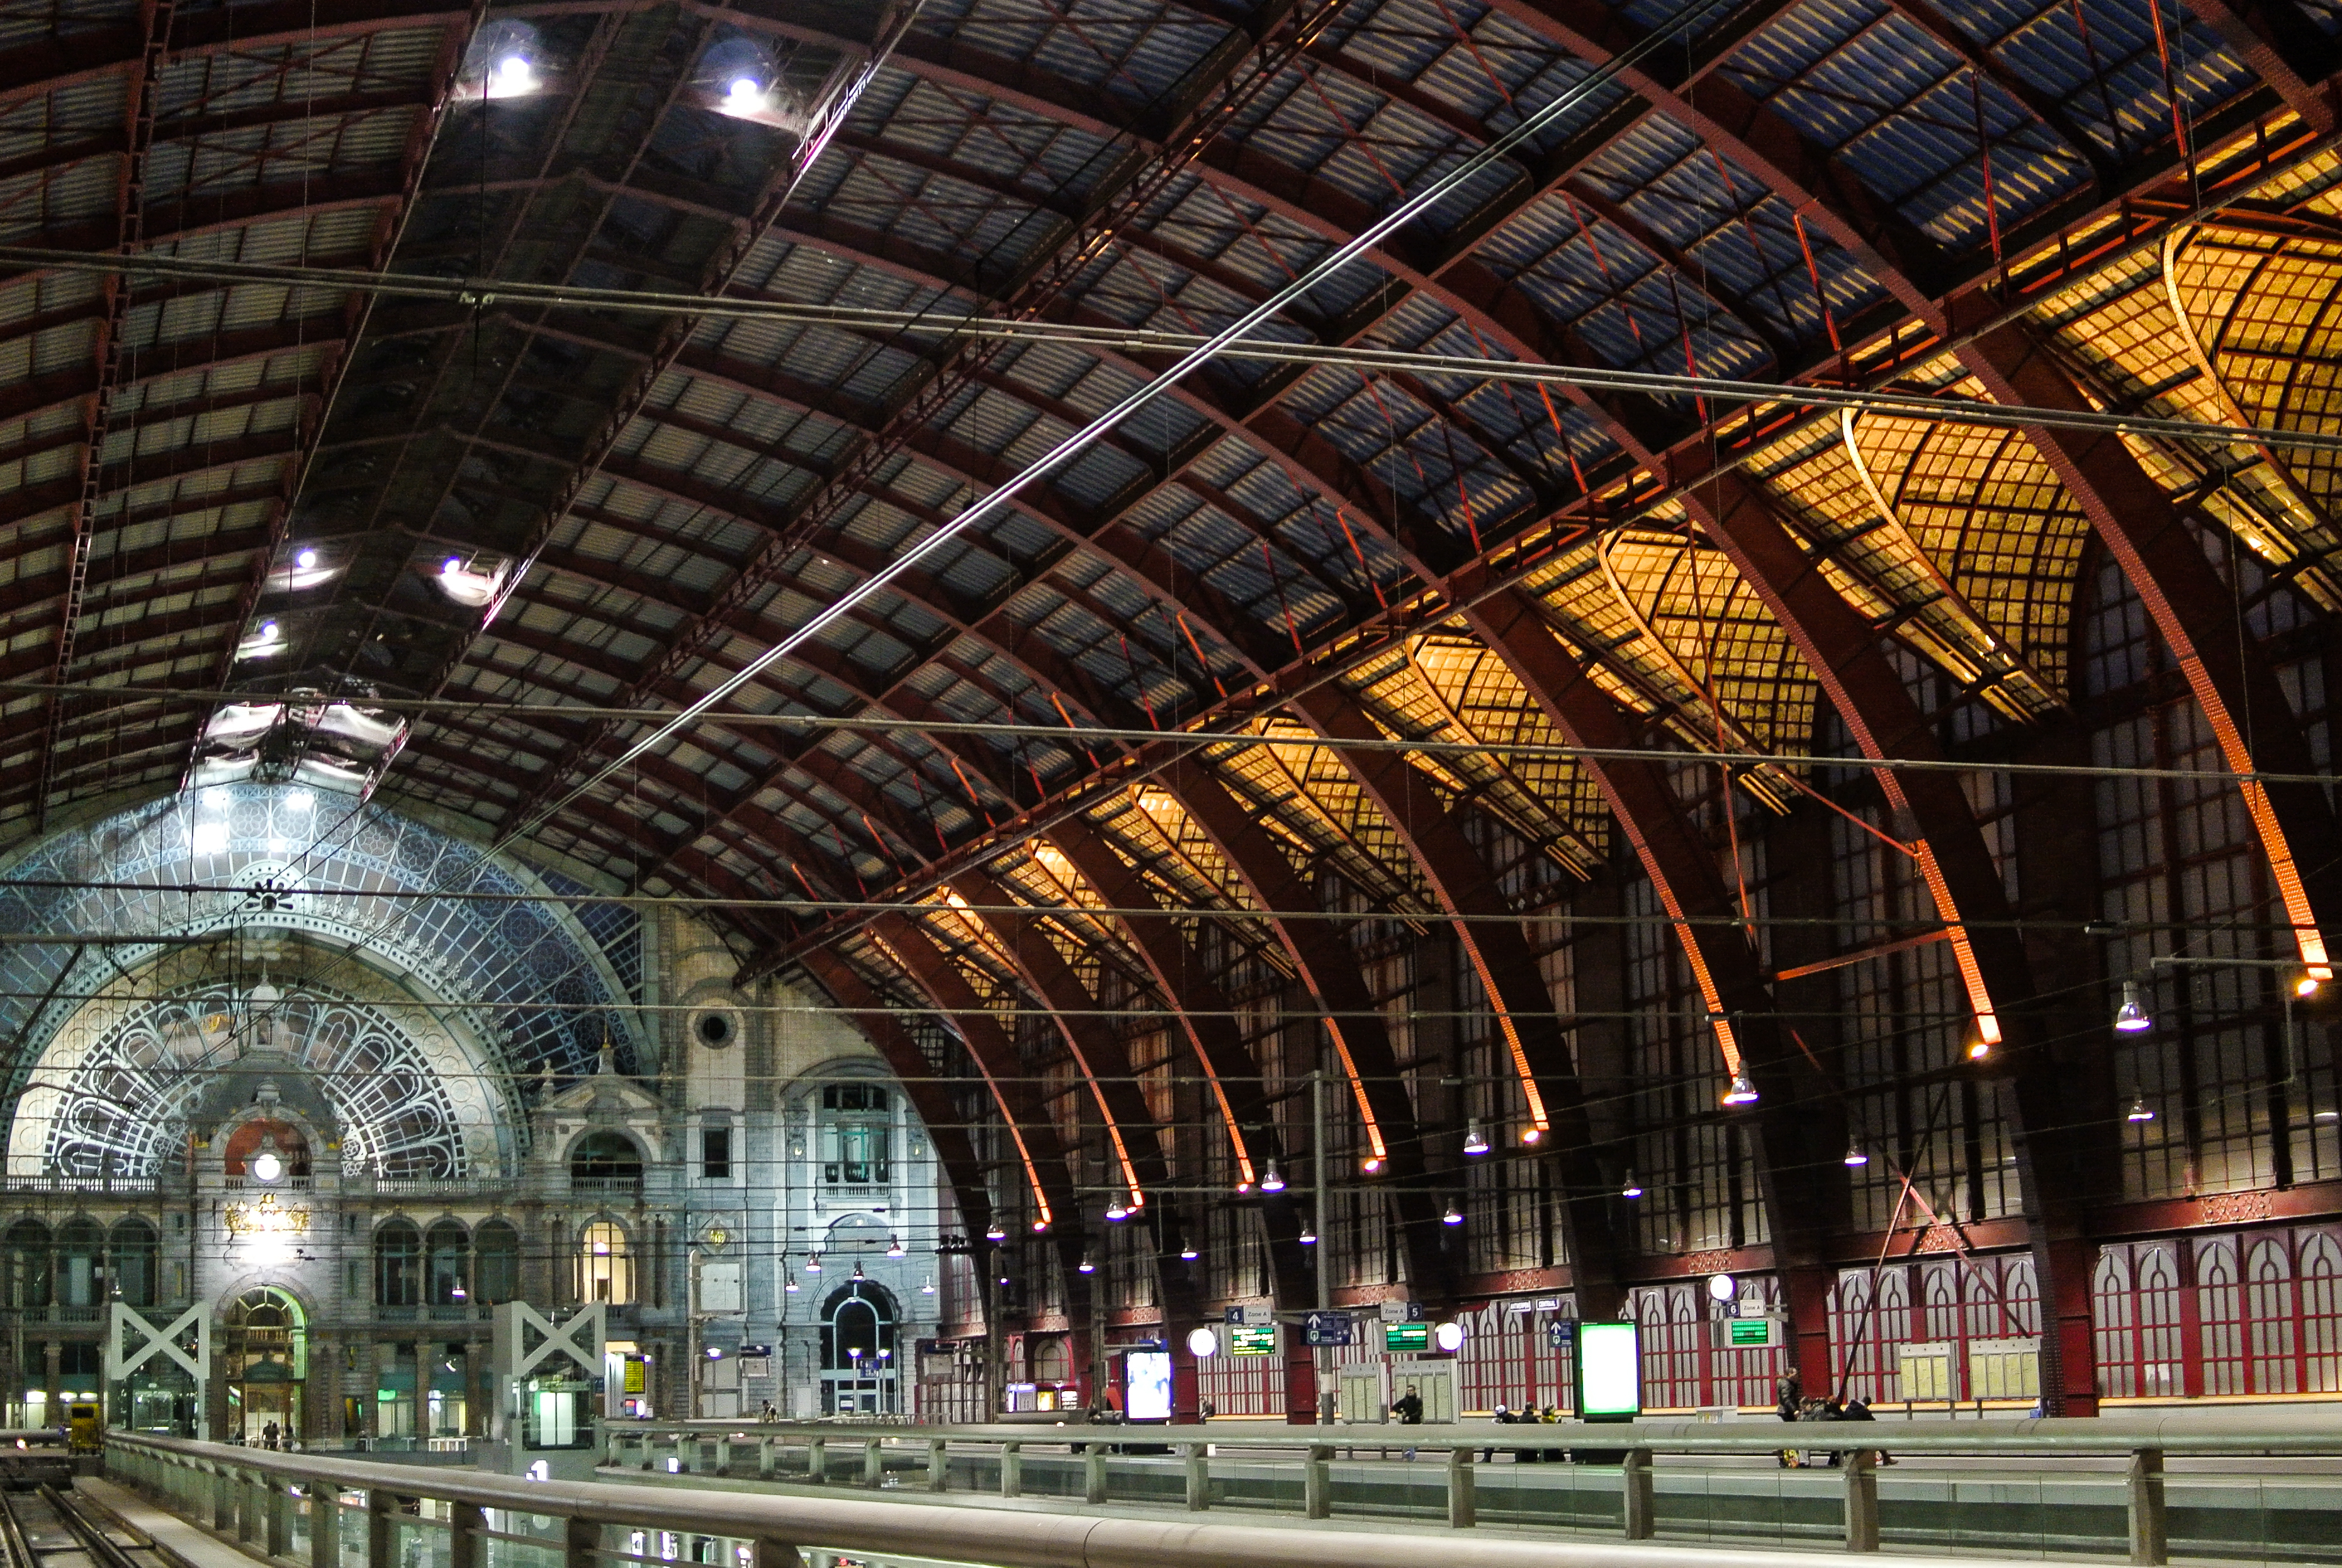 15 of the world's most beautiful train stations